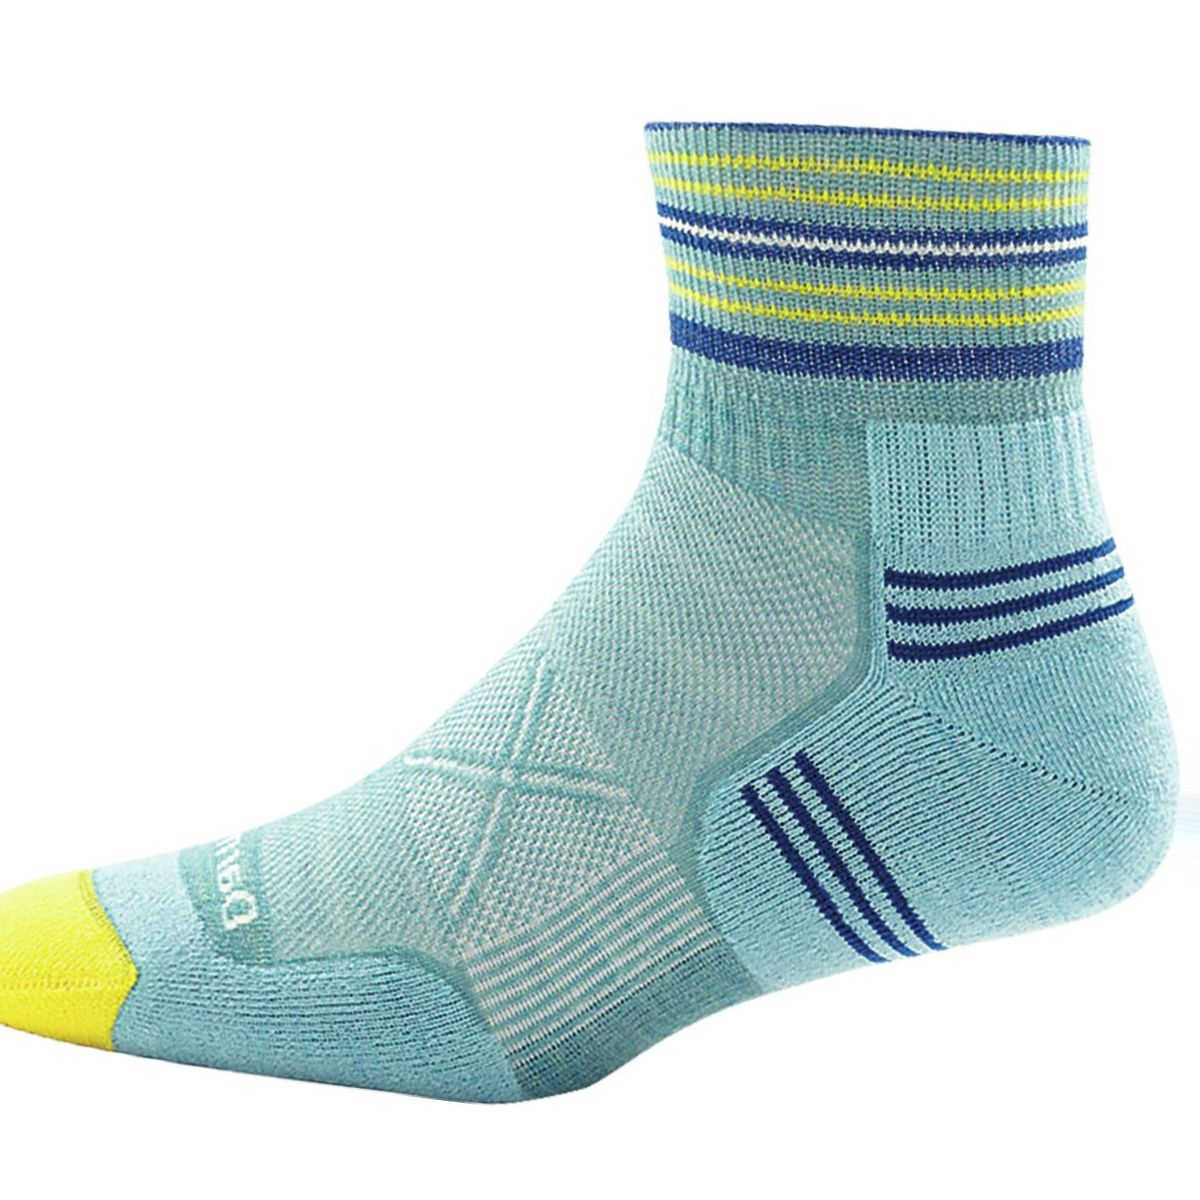 Darn Tough Vertex Stripe 1/4 Ultra-Light Sock - Women's